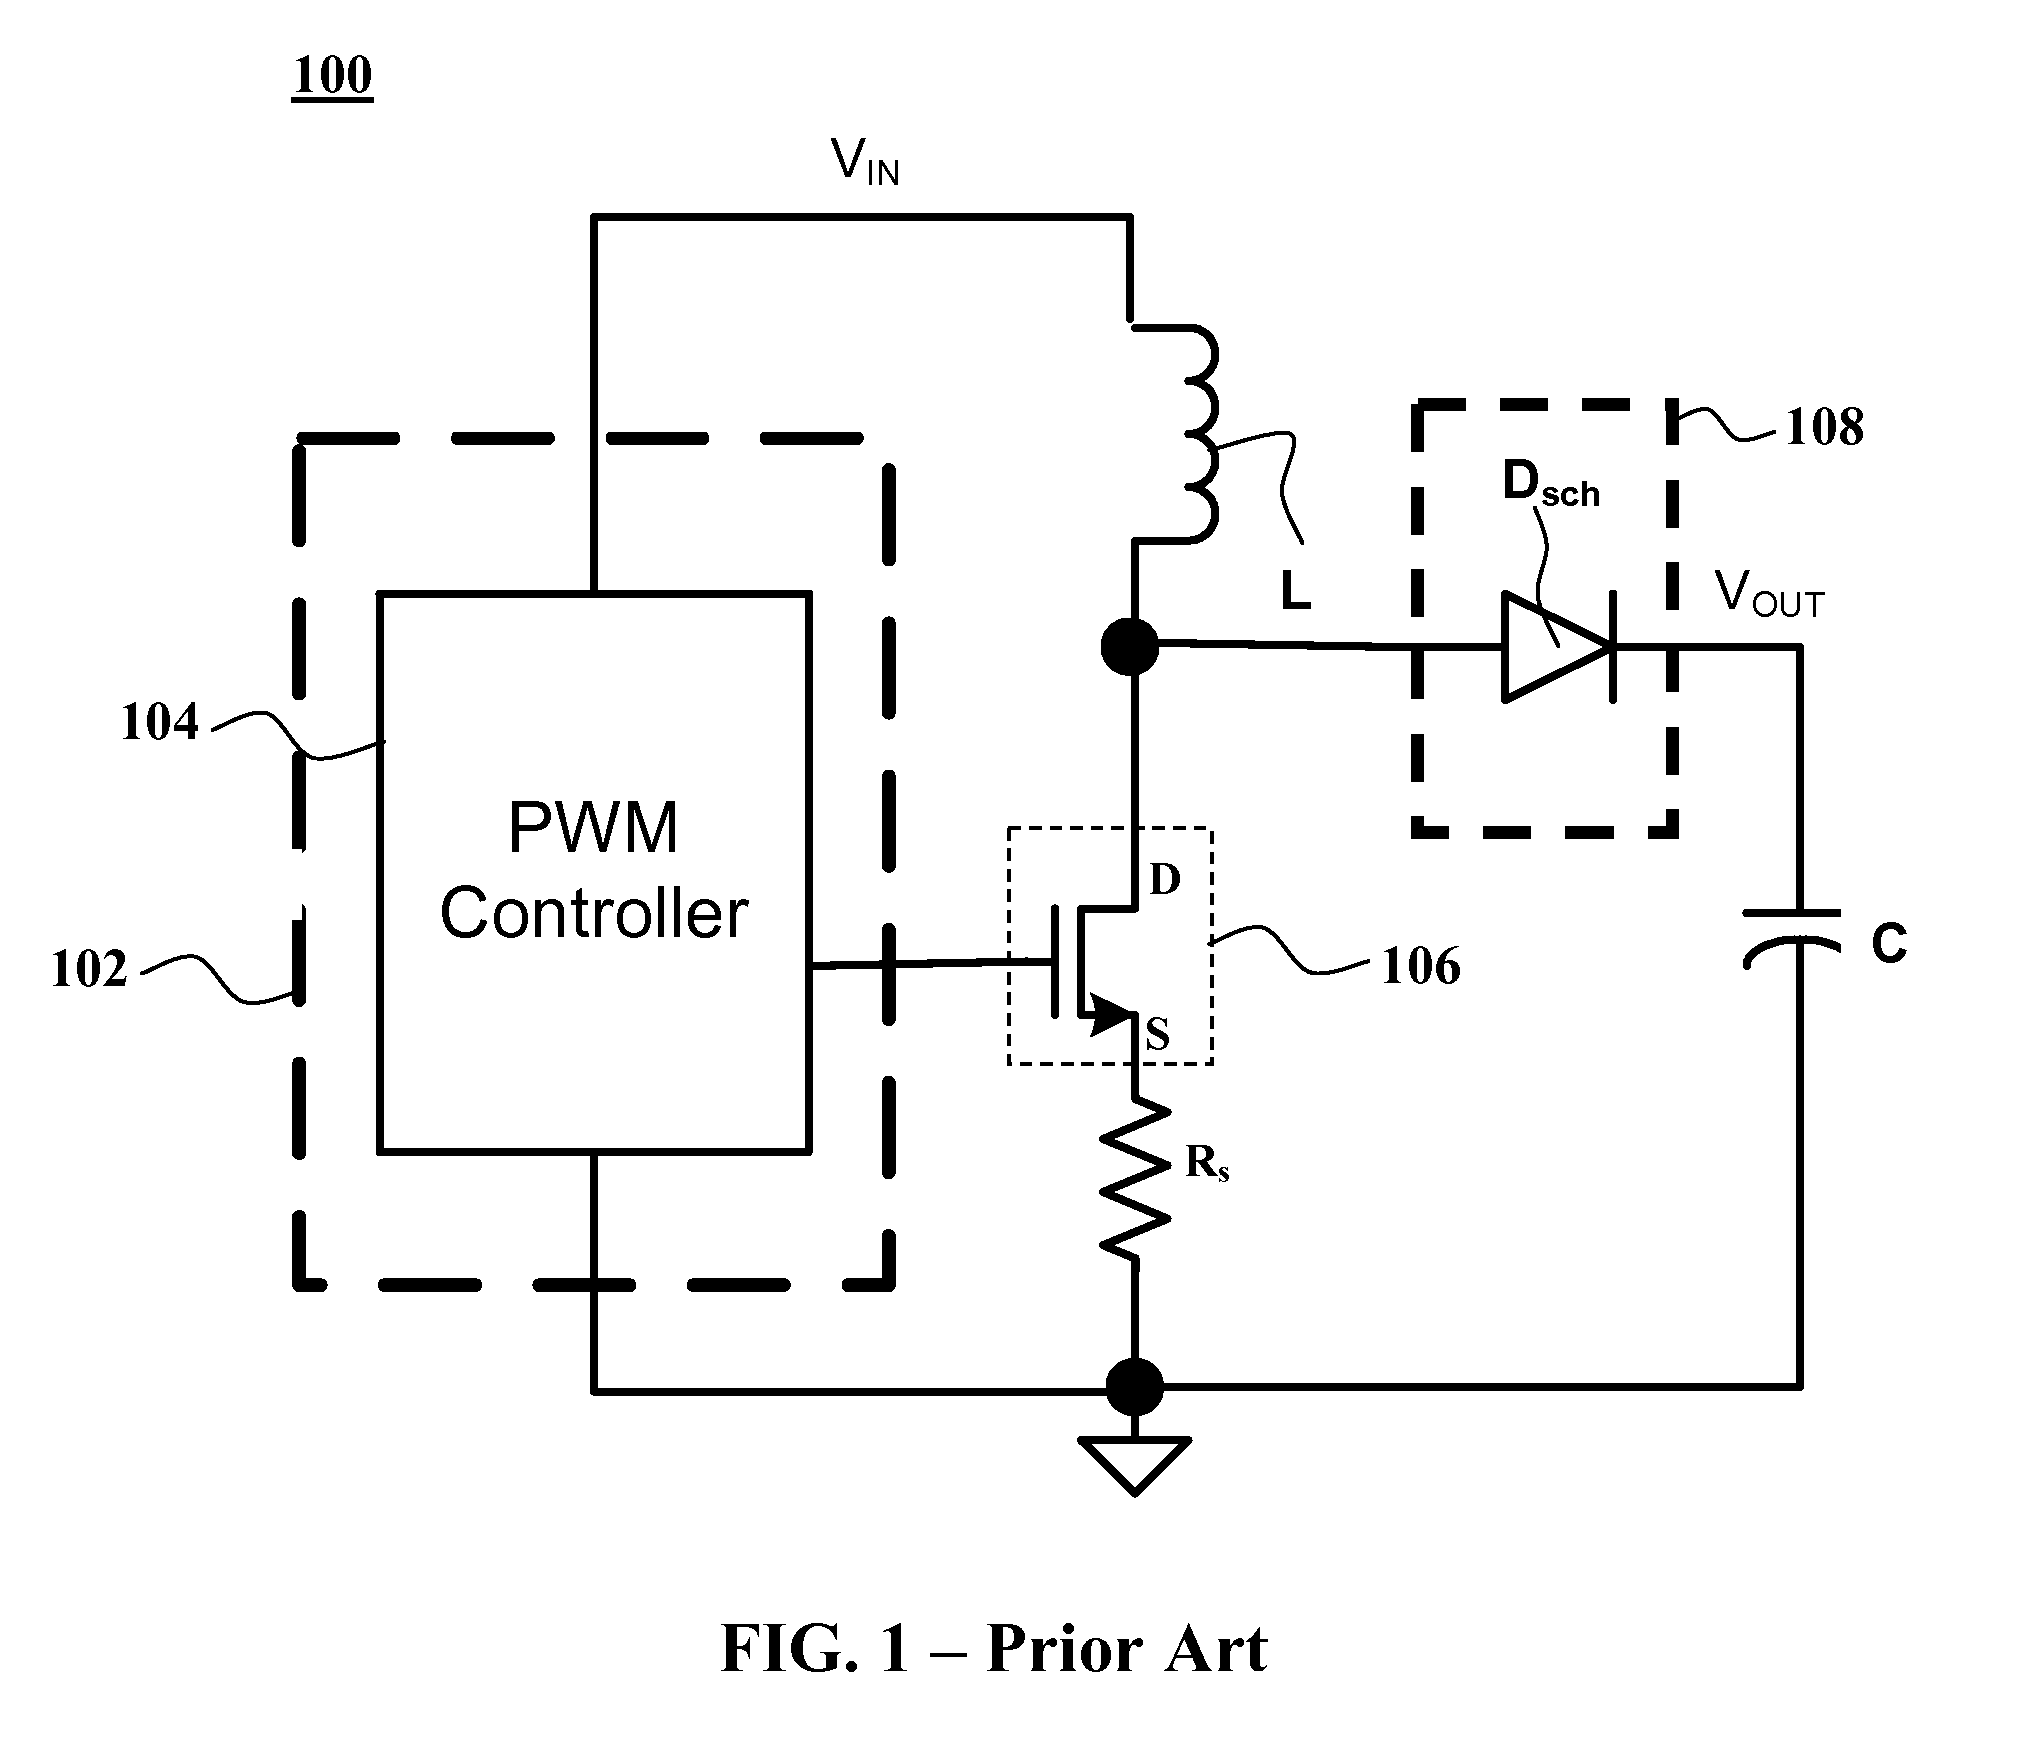 Schottky Diode Circuit 10 Amp Constant Current Load Measuringandtestcircuit Patent Us8207602 High Voltage And Power Boost